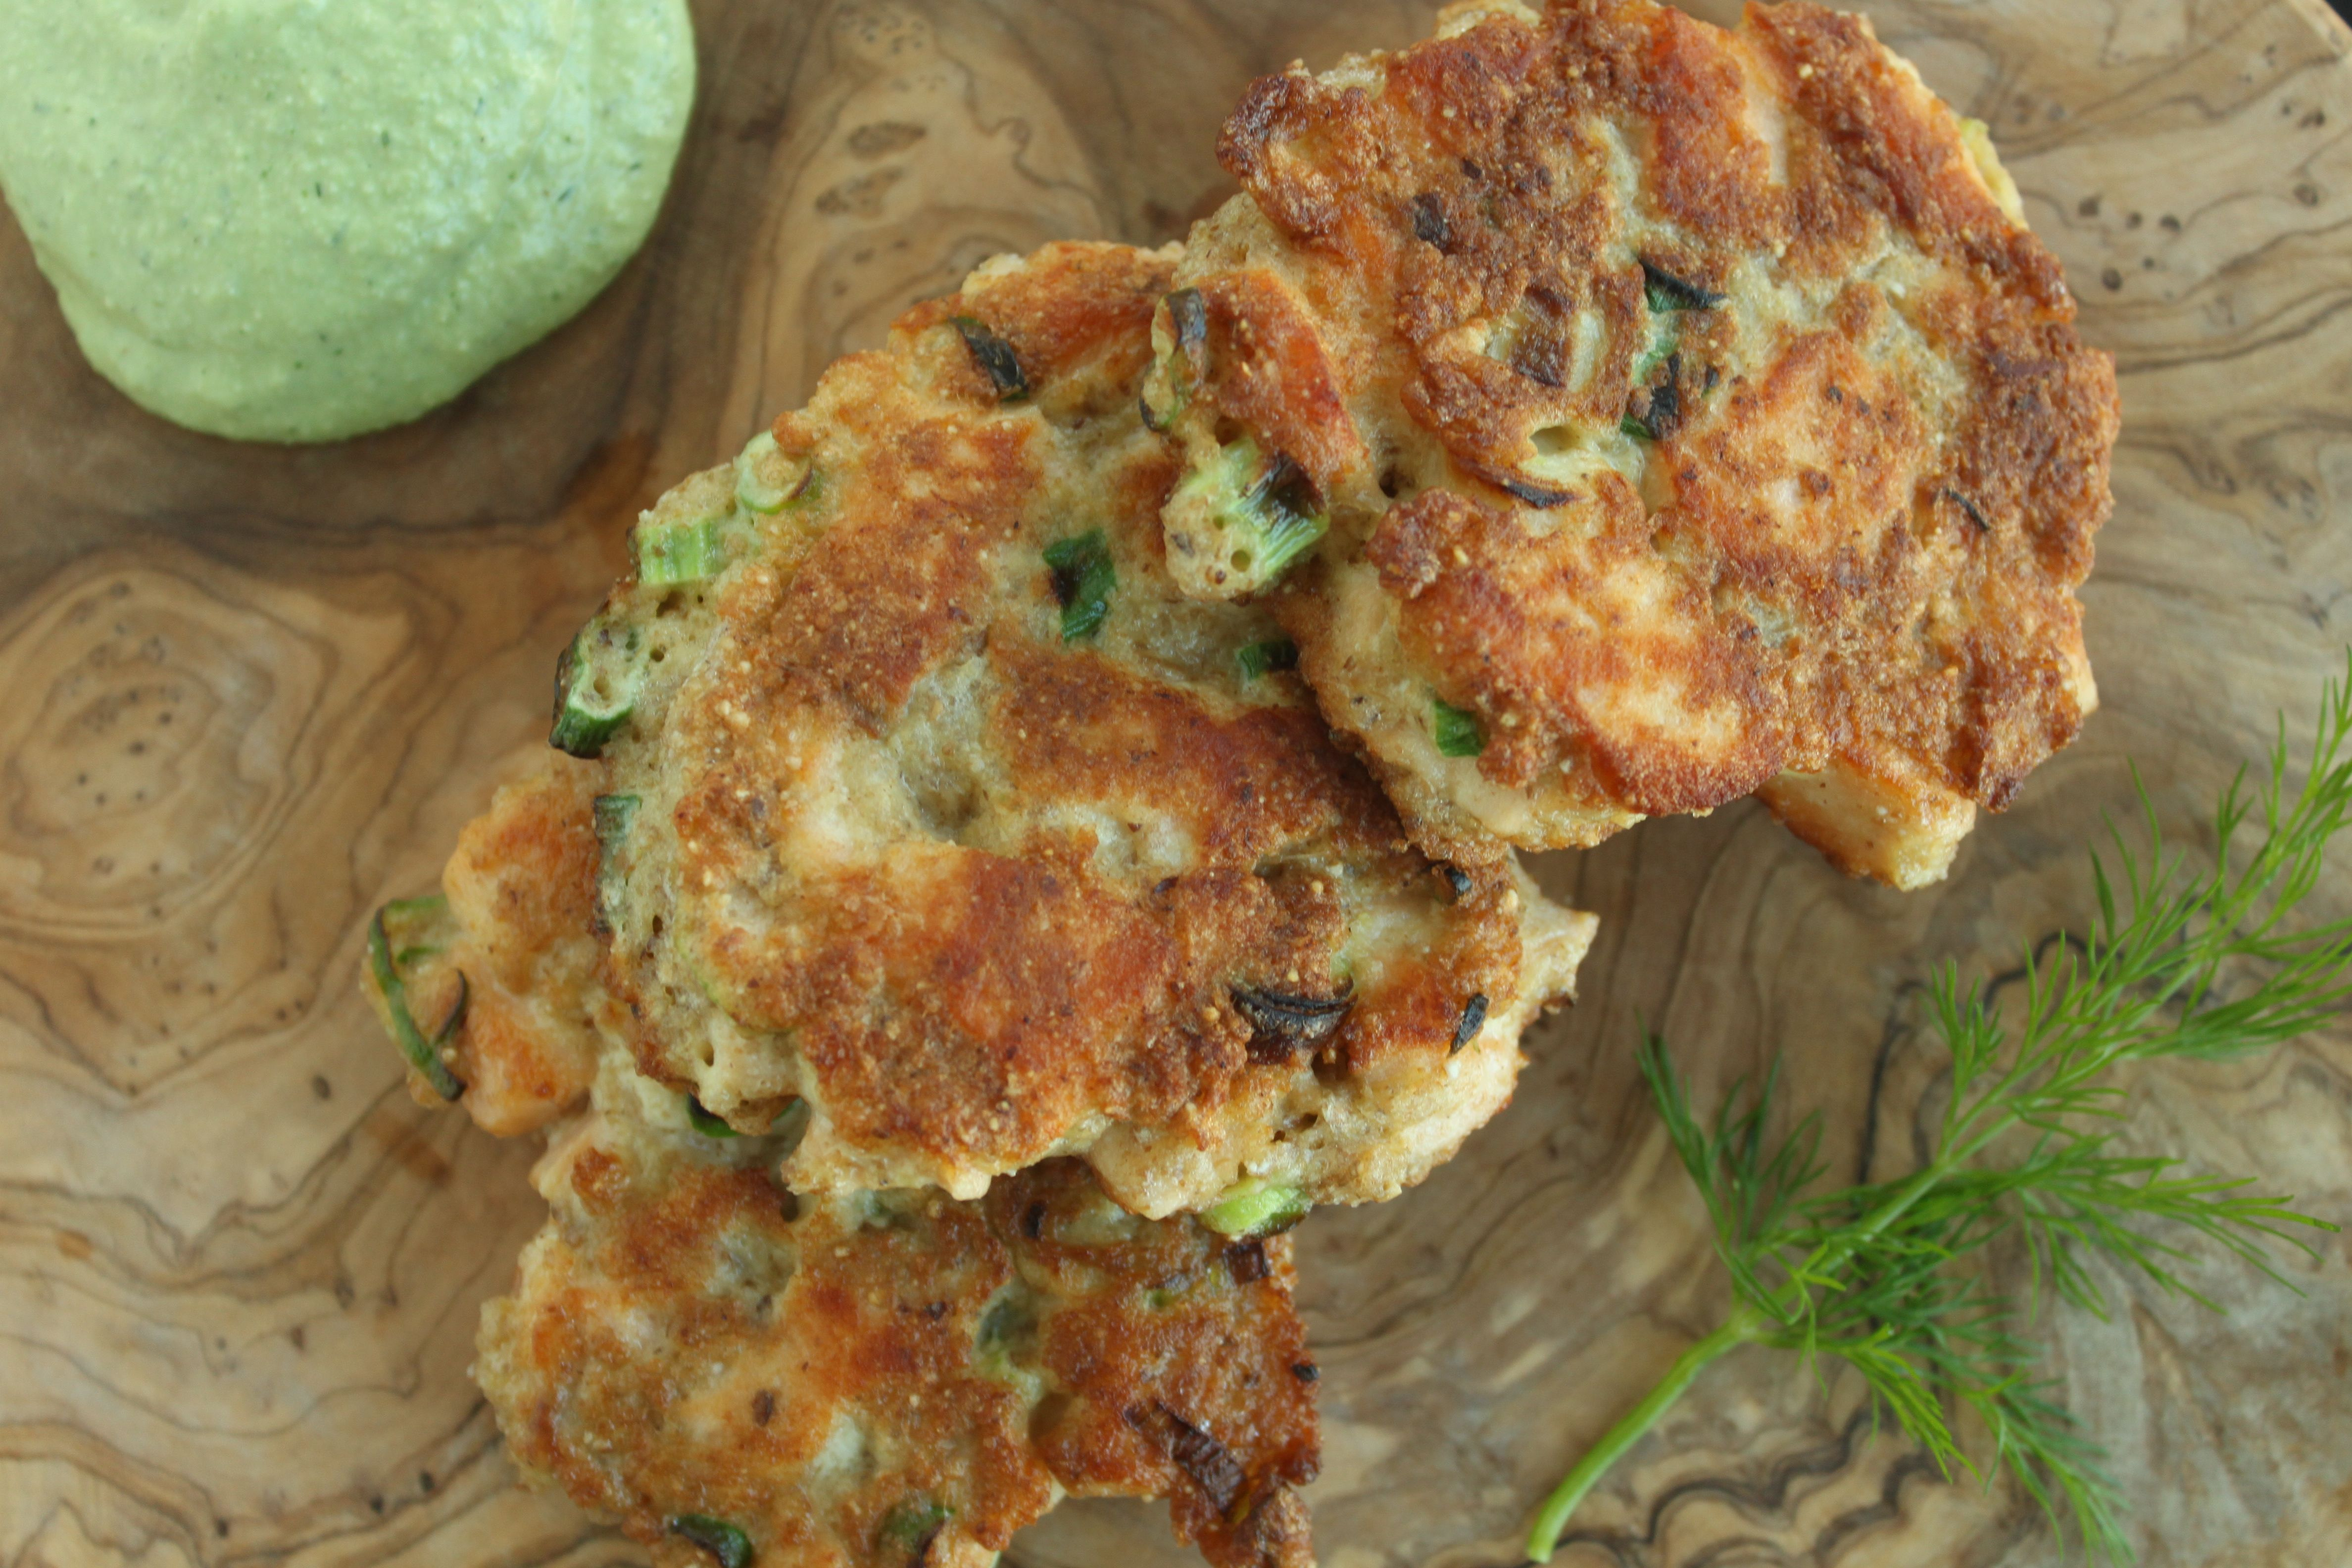 Salmon Cakes are a delicious and easy way to get your daily omega 3 intake. This recipe uses fresh salmon, not canned, cut into chunks with a creamy dairy free dill sauce. http://www.outtolunchcreations.com/recipes/salmon-cakes-with-creamy-dill-sauce/ #DairyFree #GlutenFree #NightshadeFree #Salmon #Seafood